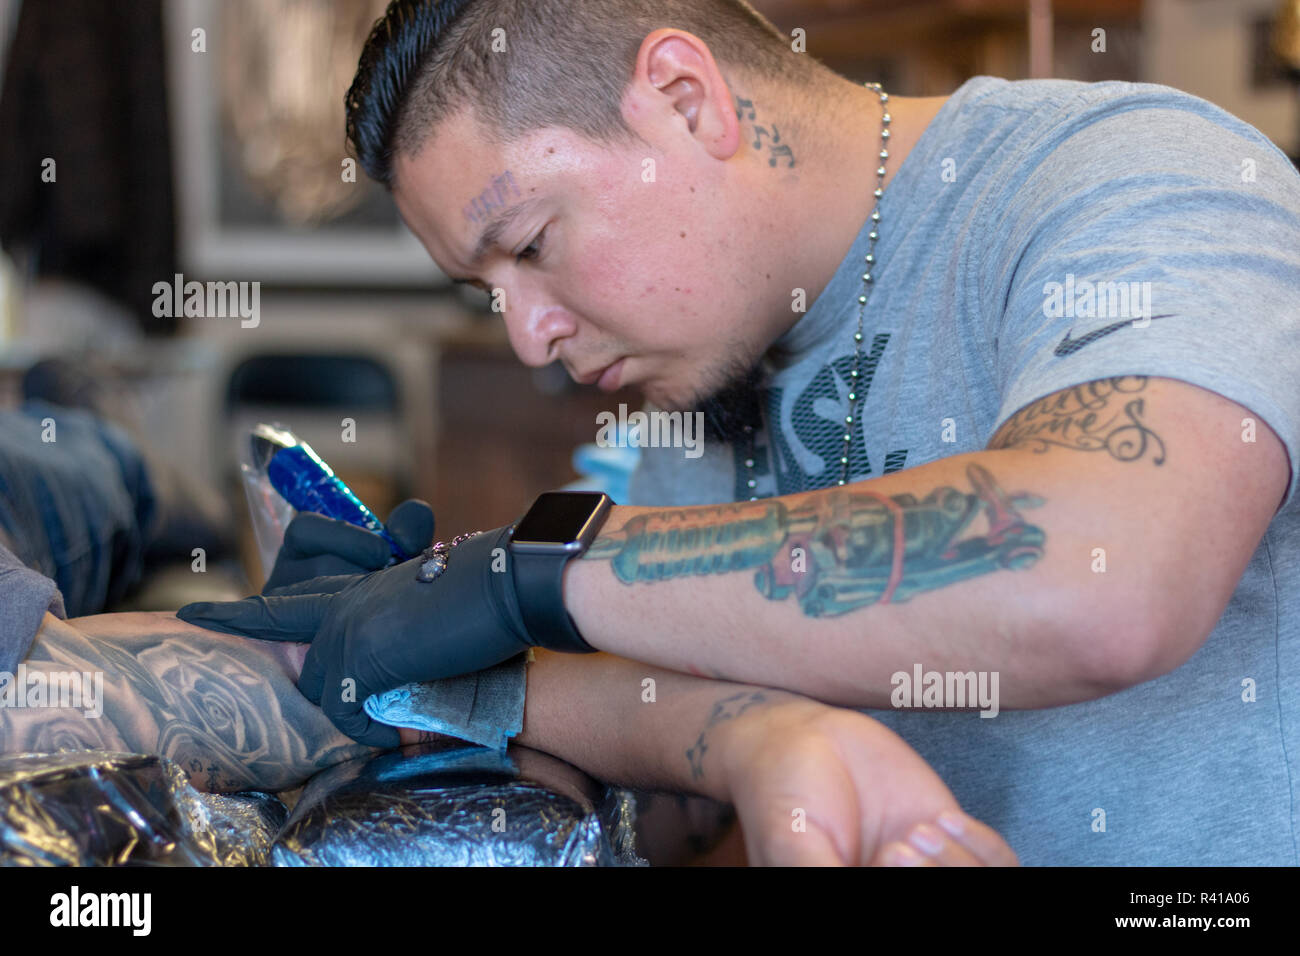 Tattoo Artis tattoos a man in Reno Nevada United States Stock Photo ...